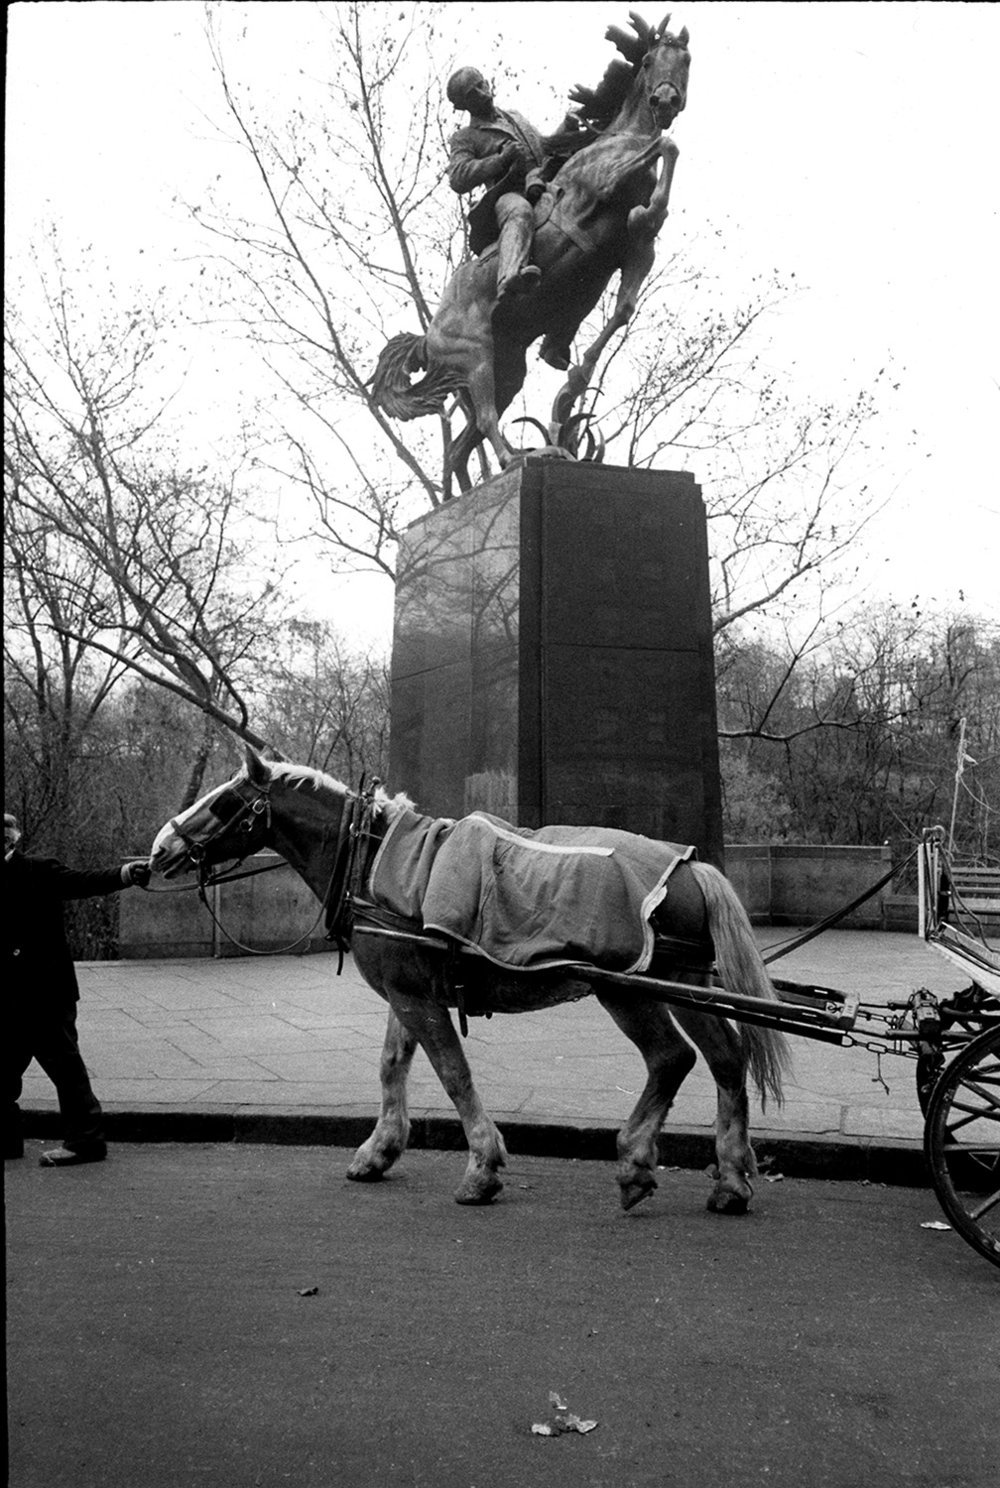 carriage horse&statue.jpg